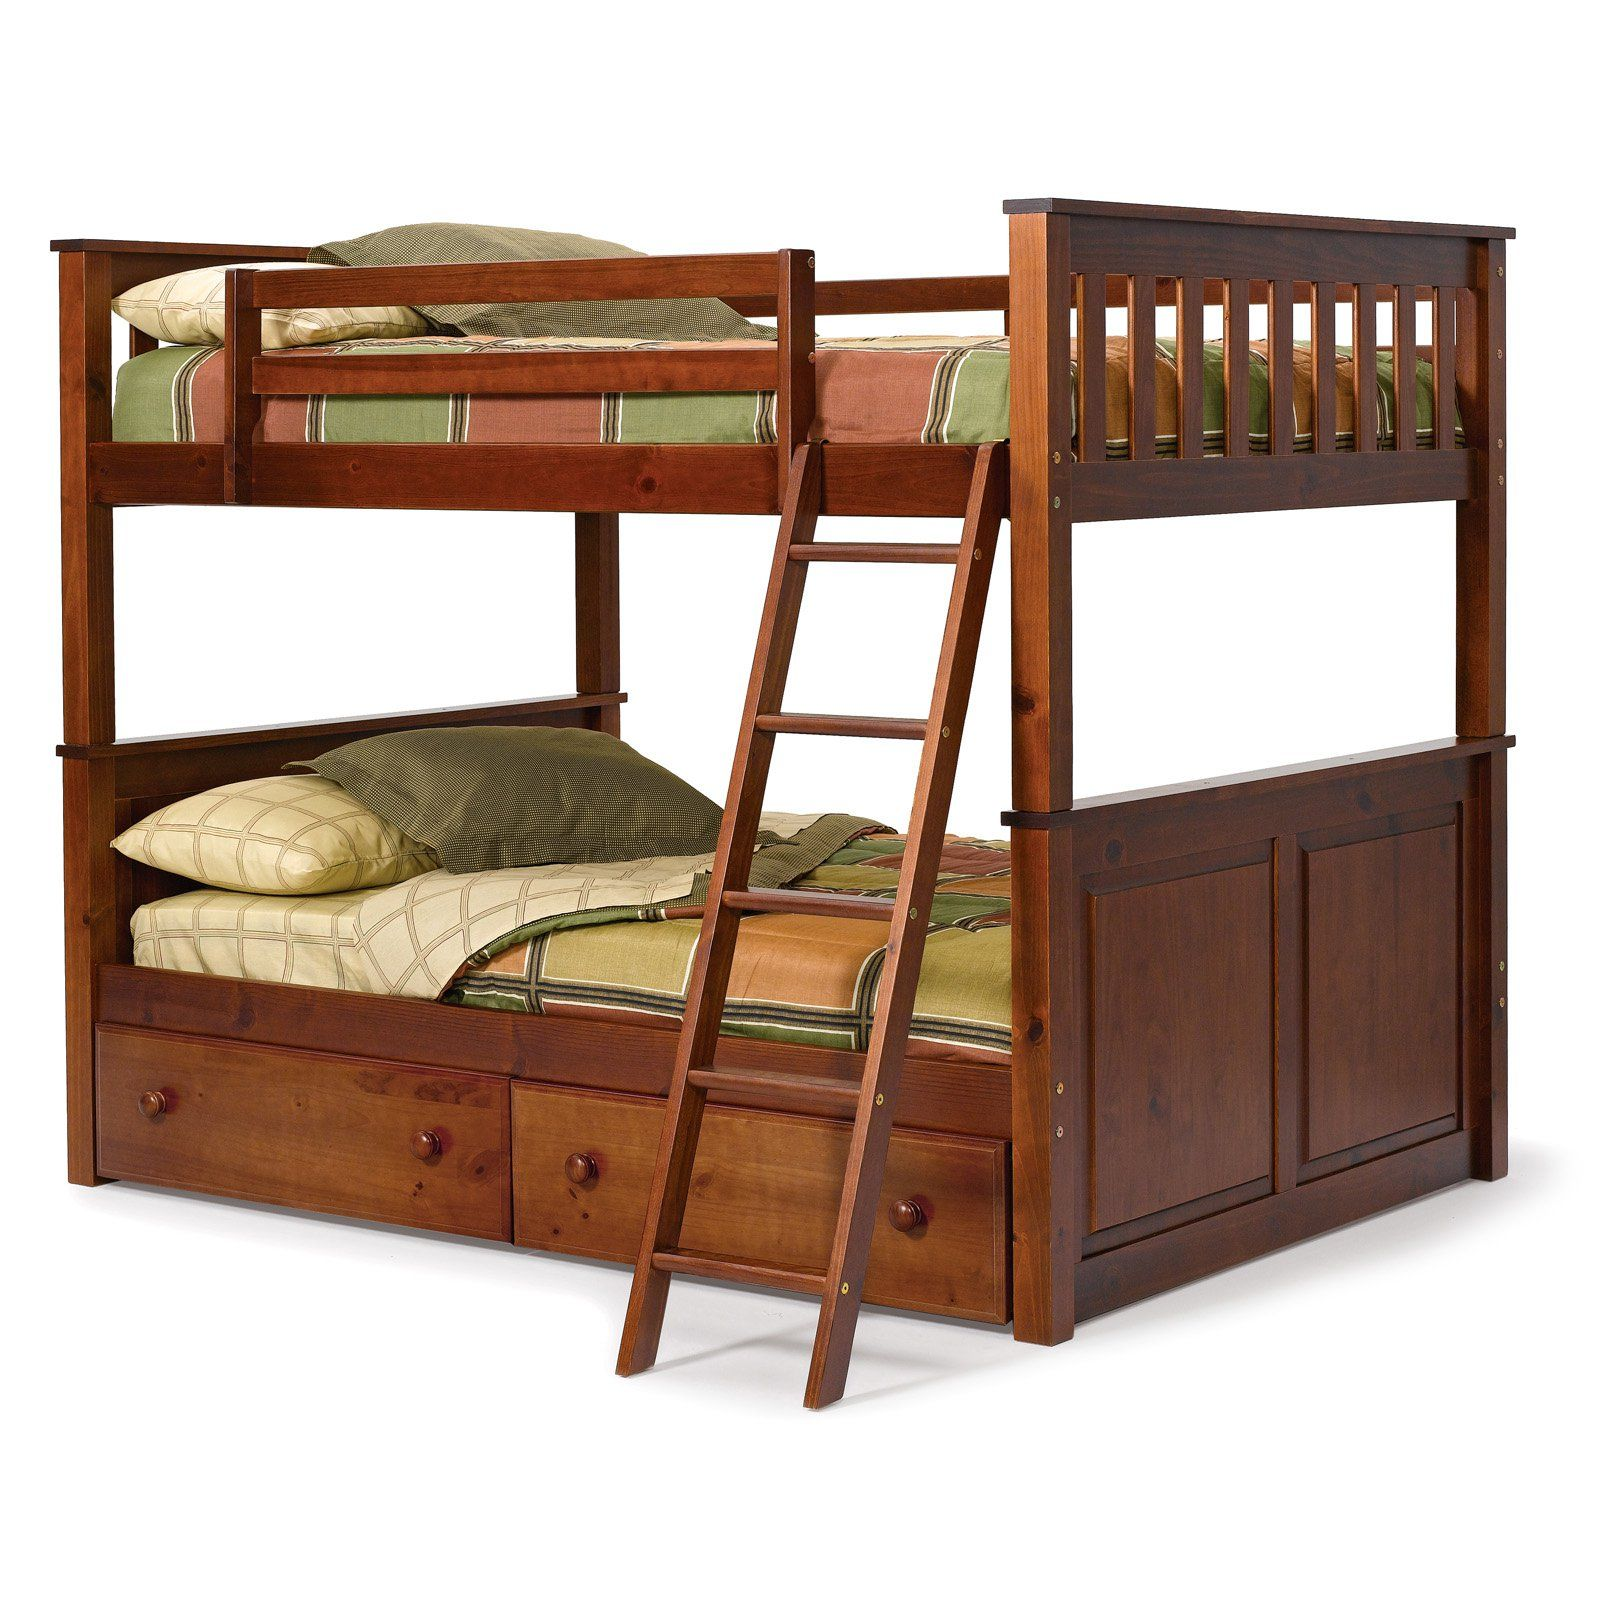 Woodcrest Pine Ridge Full Over Full Bunk Bed Chocolate The